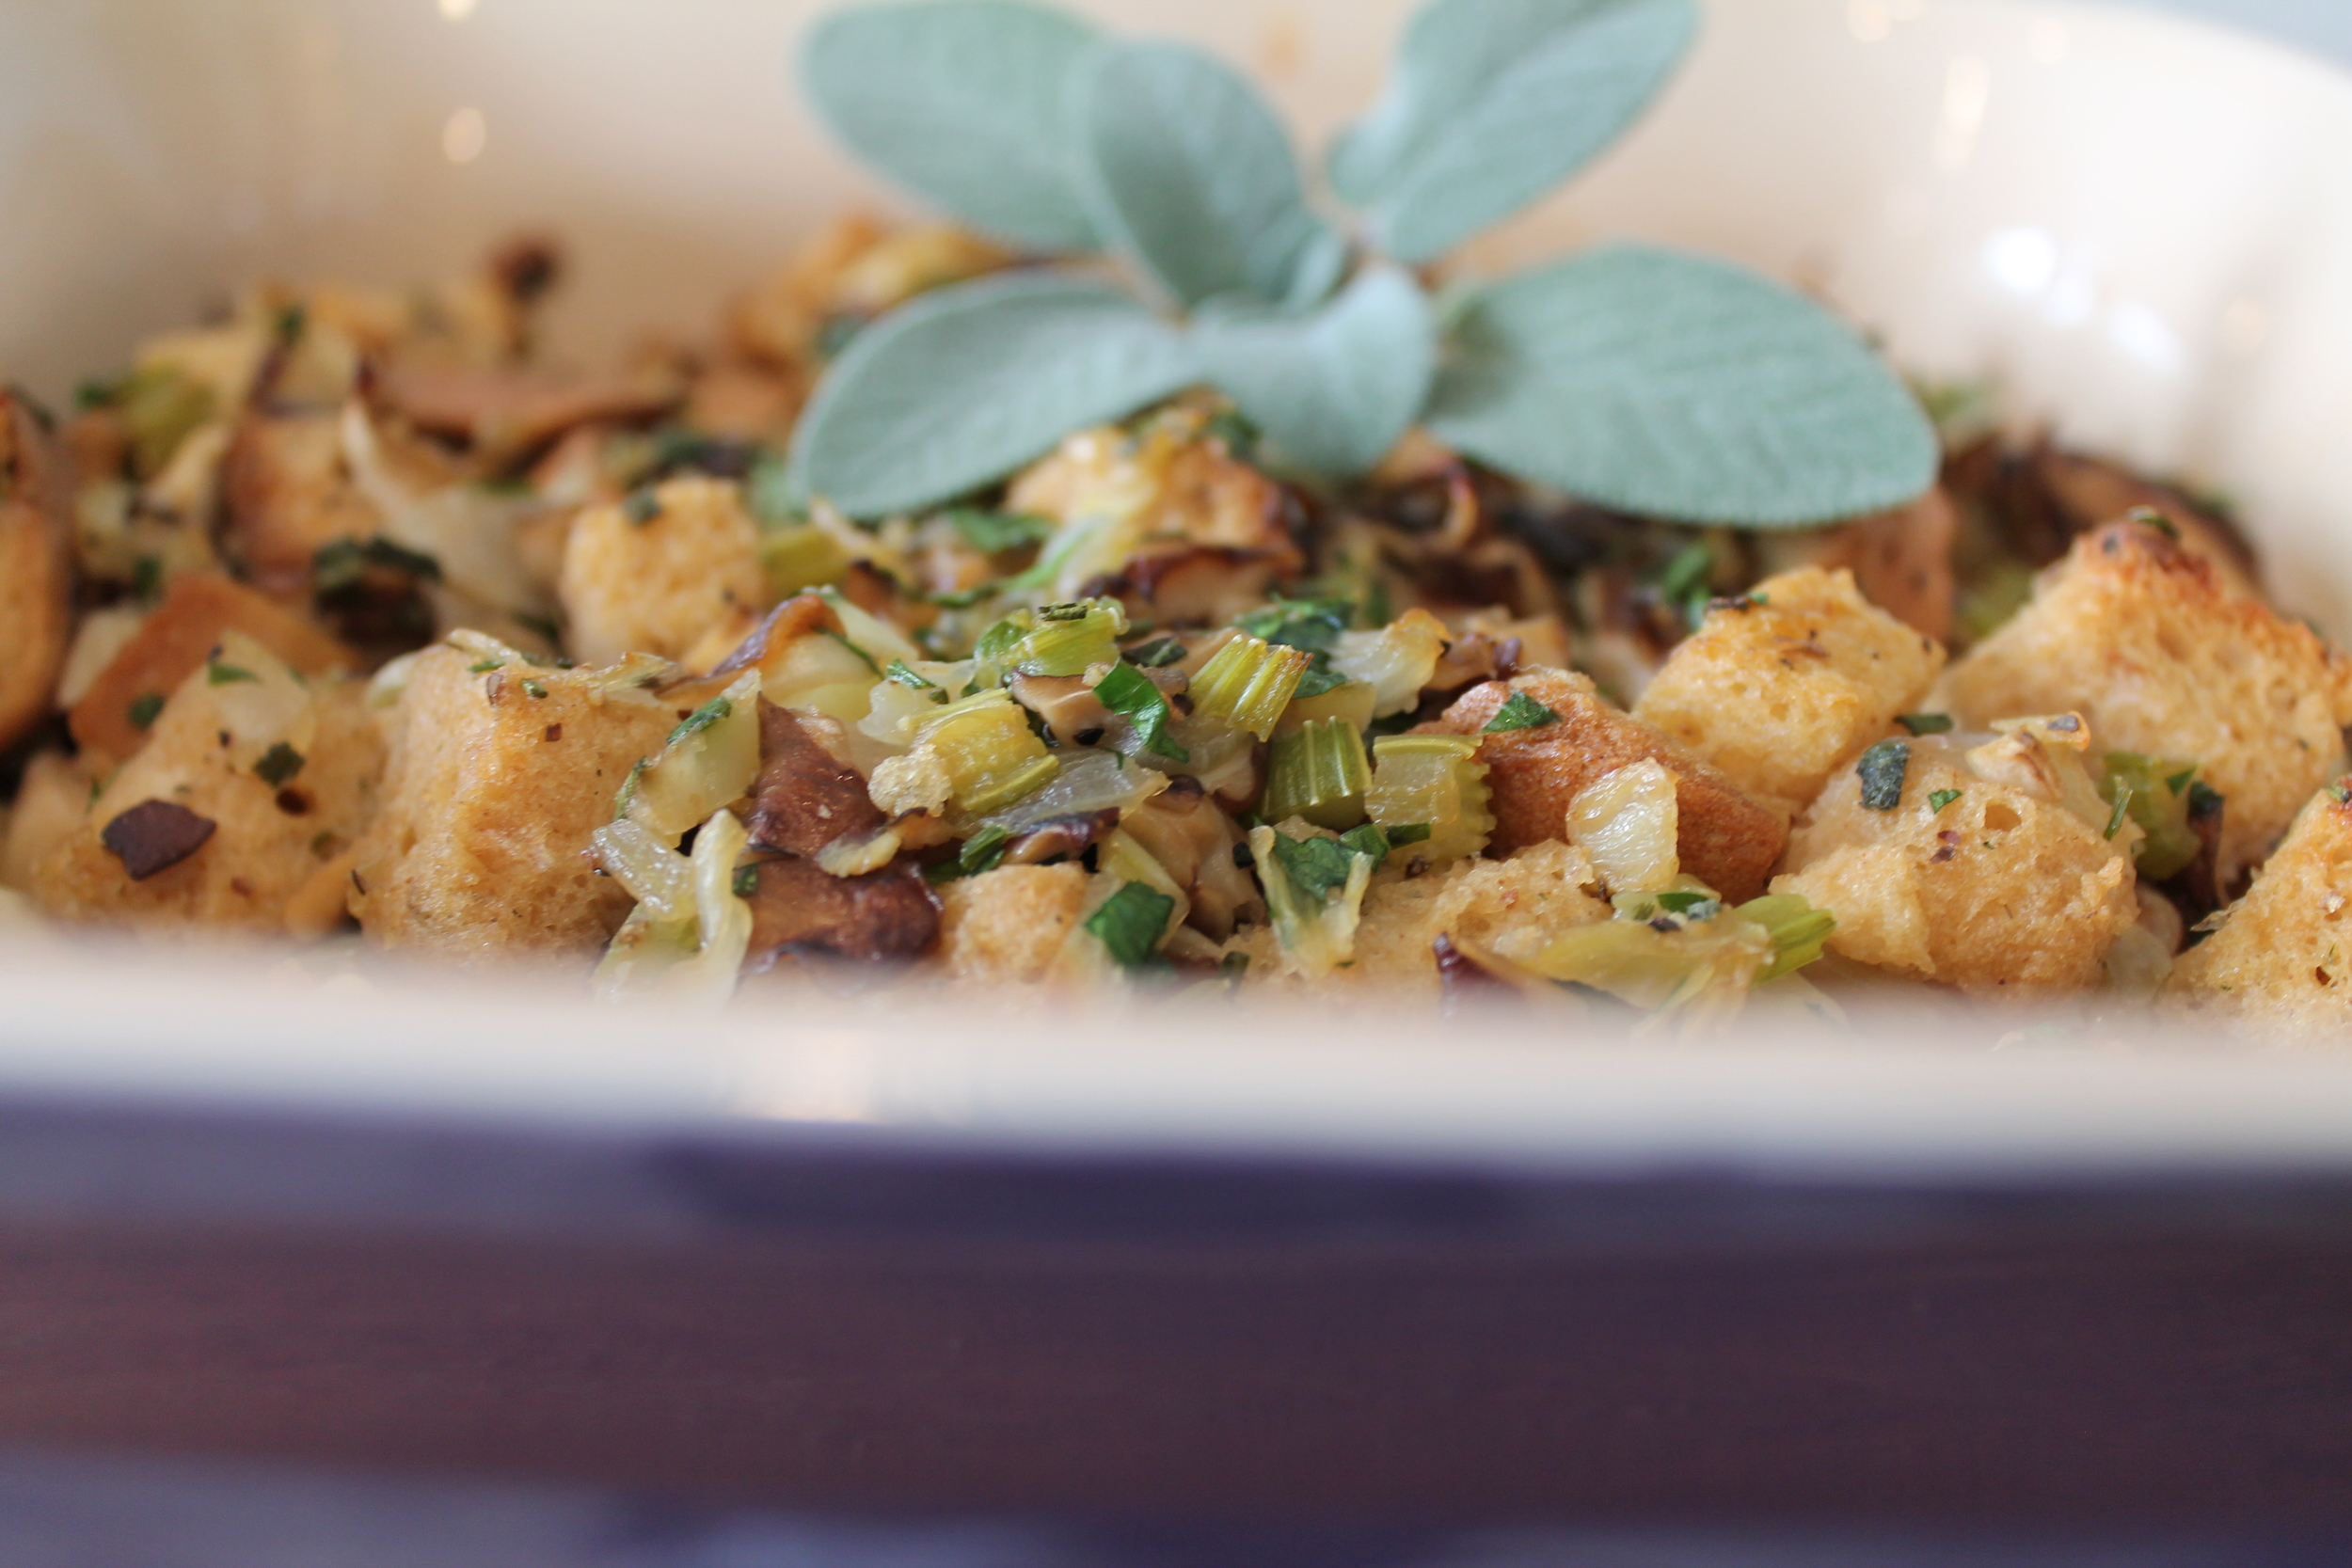 Gluten-free and Vegan Rosemary Fennel Stuffing with Shiitake Mushrooms by www.fernsandpeonies.com